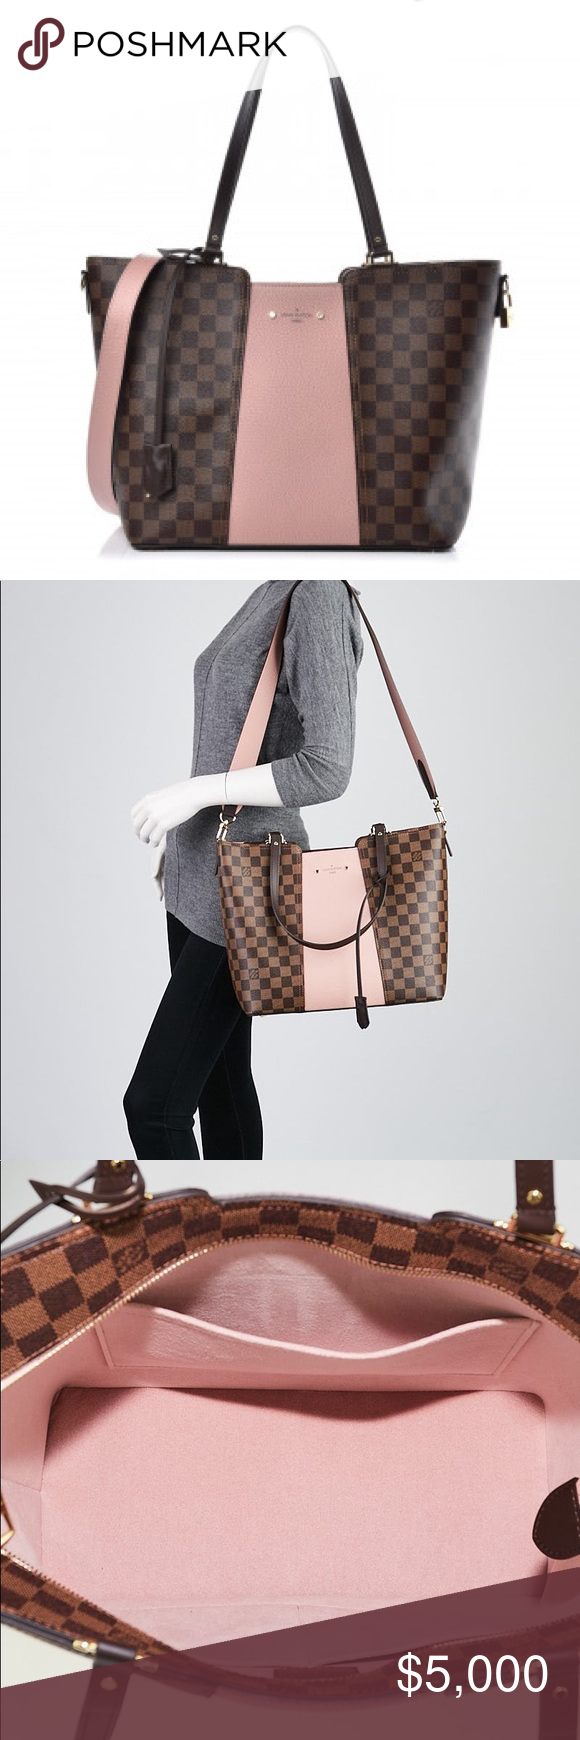 ❤️❤️LIKE NEW LOUIS VUITTON JERSEY DAMIER EBE ❤️❤️LIKE NEW LOUIS VUITTON JERSEY DAMIER EBENE IN MAGNOLIA, ABSOLUTELY STUNNING!!! SO VERSATILE, EXTRA WIDE STRAP FOR COMFORT, WEAR ON YOUR SHOULDER, ARM, OR CARRY AND YOU WILL BE BEAUTIFUL!!! THIS BAG FIYS EVERYTHING, ZIPPER TOP, LARGE OPEN COMPARTMENT, AND SEVERAL SLIDE POCKETS FOR ANYTHING YOU NEED!!! COMES WITH LOCK, KEYS, KEYBELL, TAGS AND DUST BAG!!! All my bags are cleaned and conditioned and stored in their dust bags!!!❤️❤️❤️❤️❤️❤️❤️❤️❤️❤️❤️❤️ #zippertop